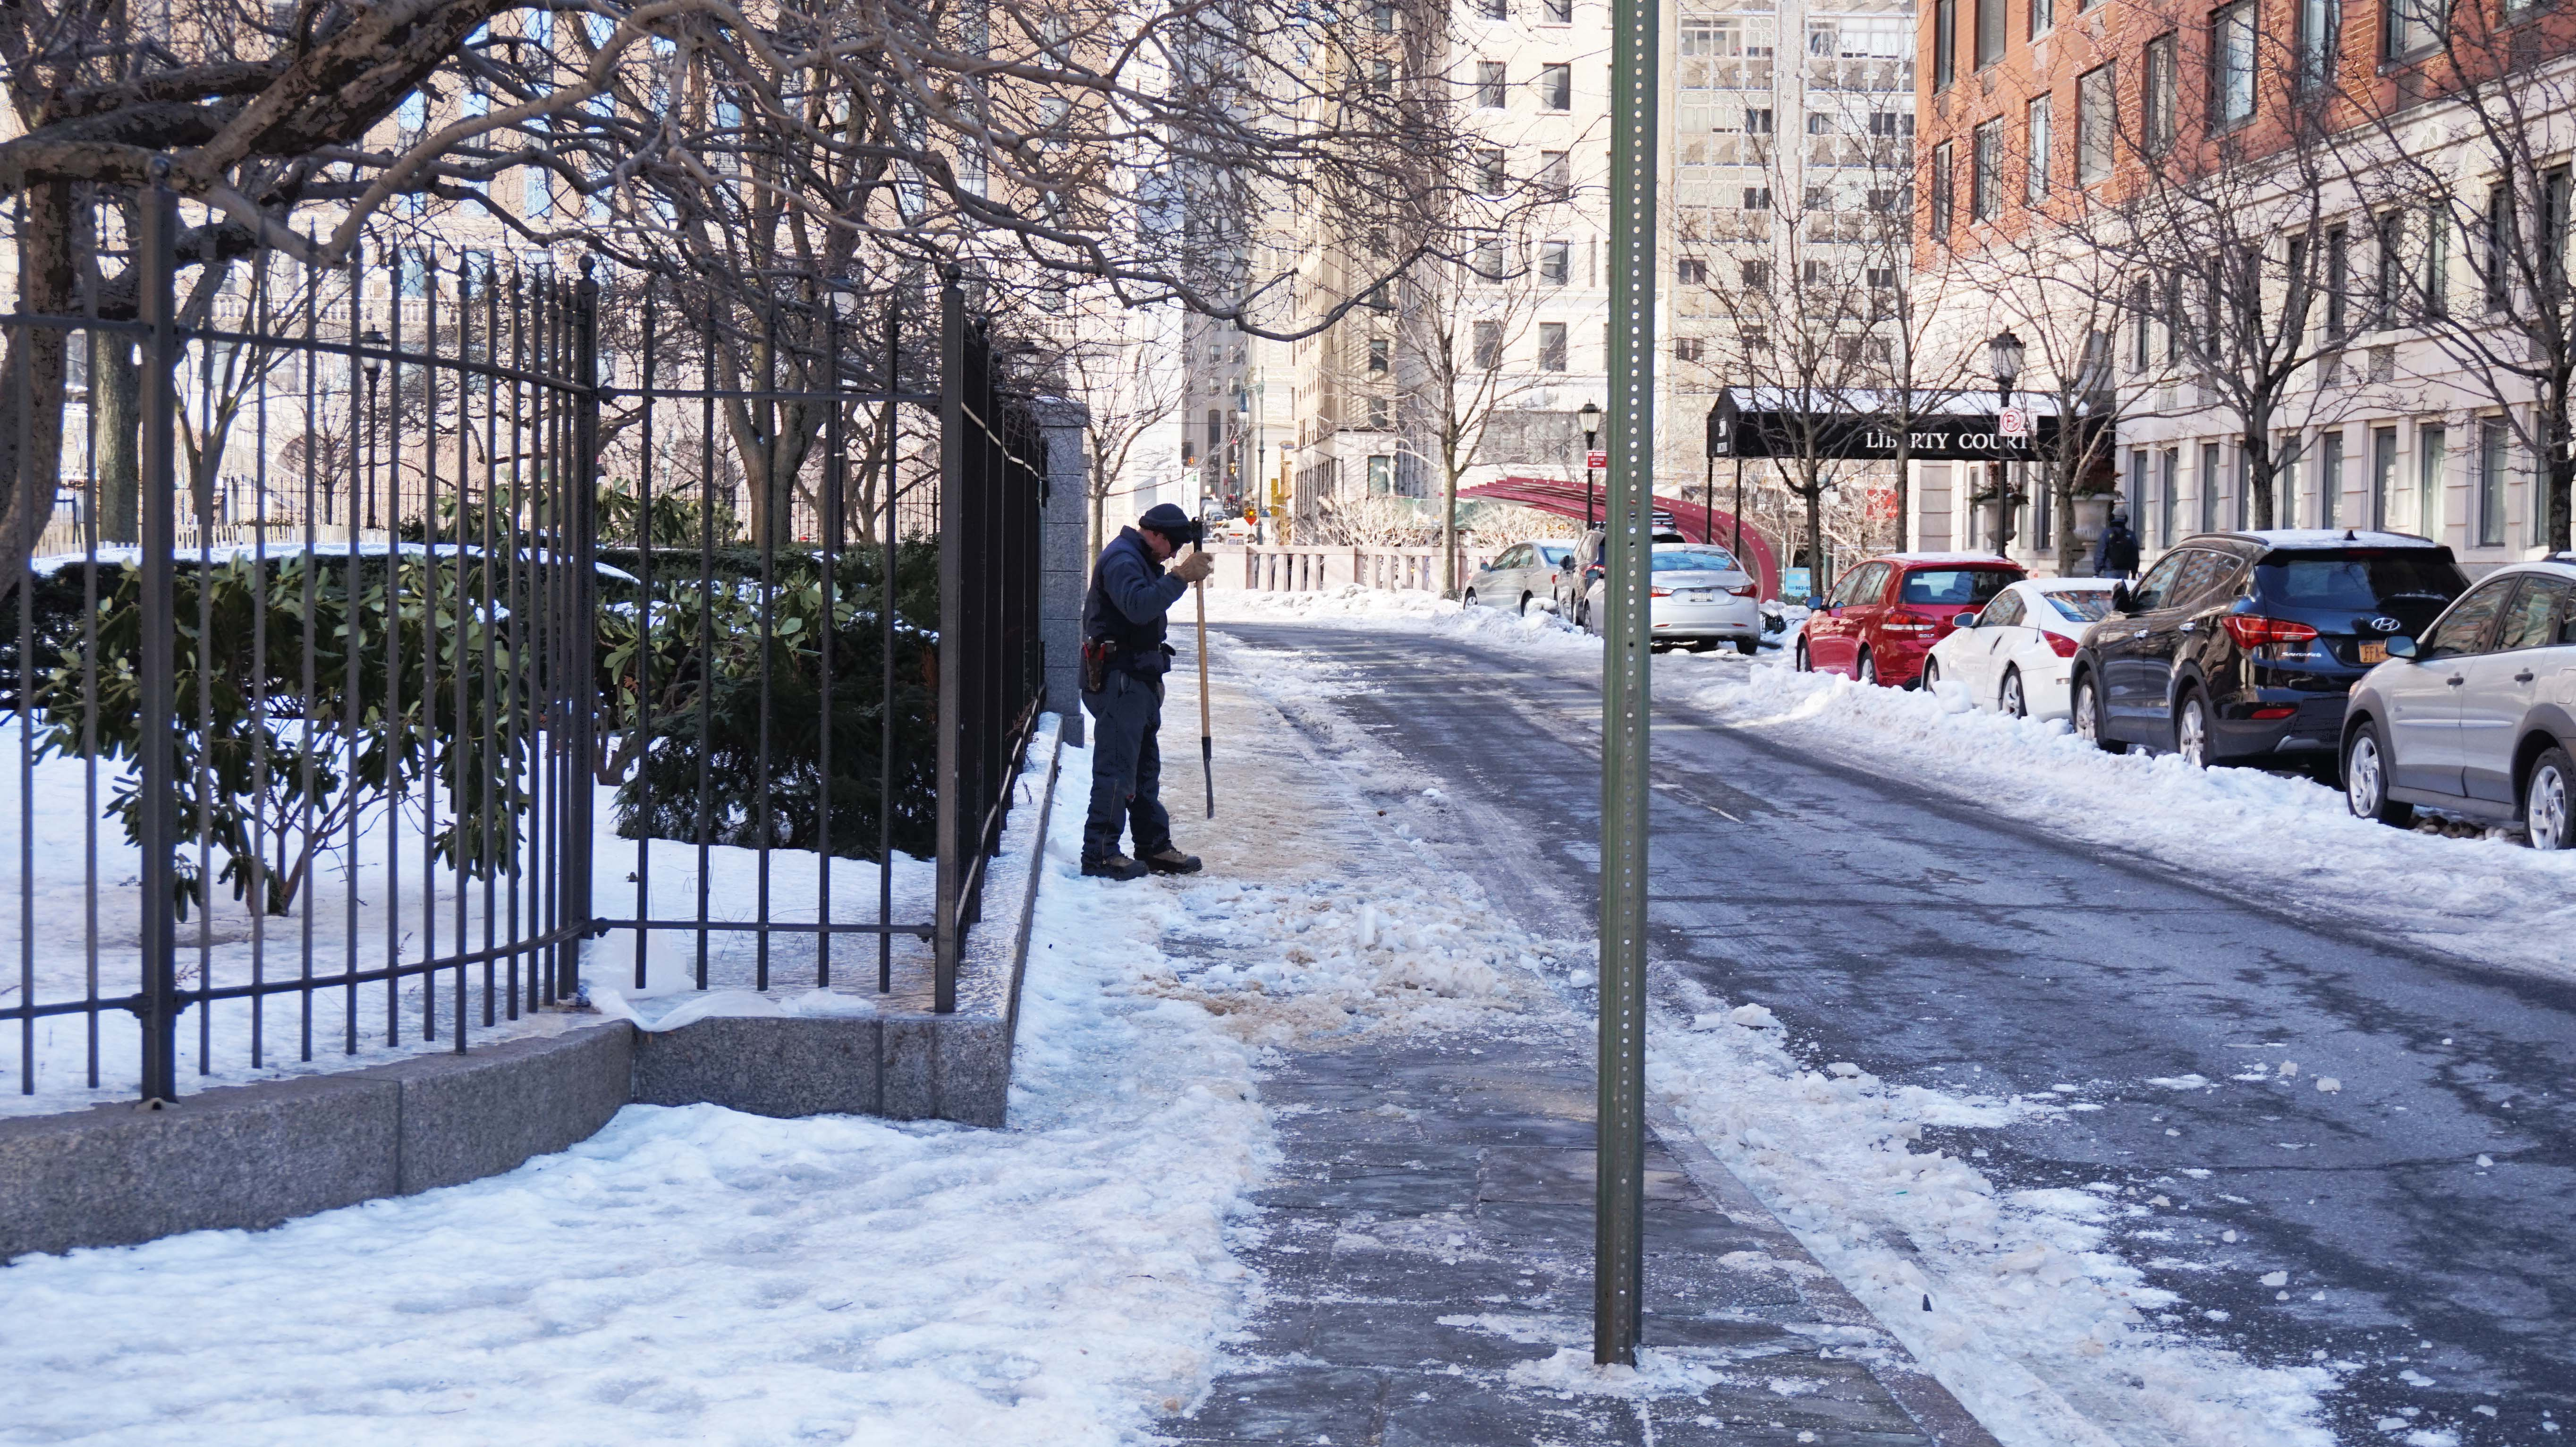 BPC parks employee chizzeling snow